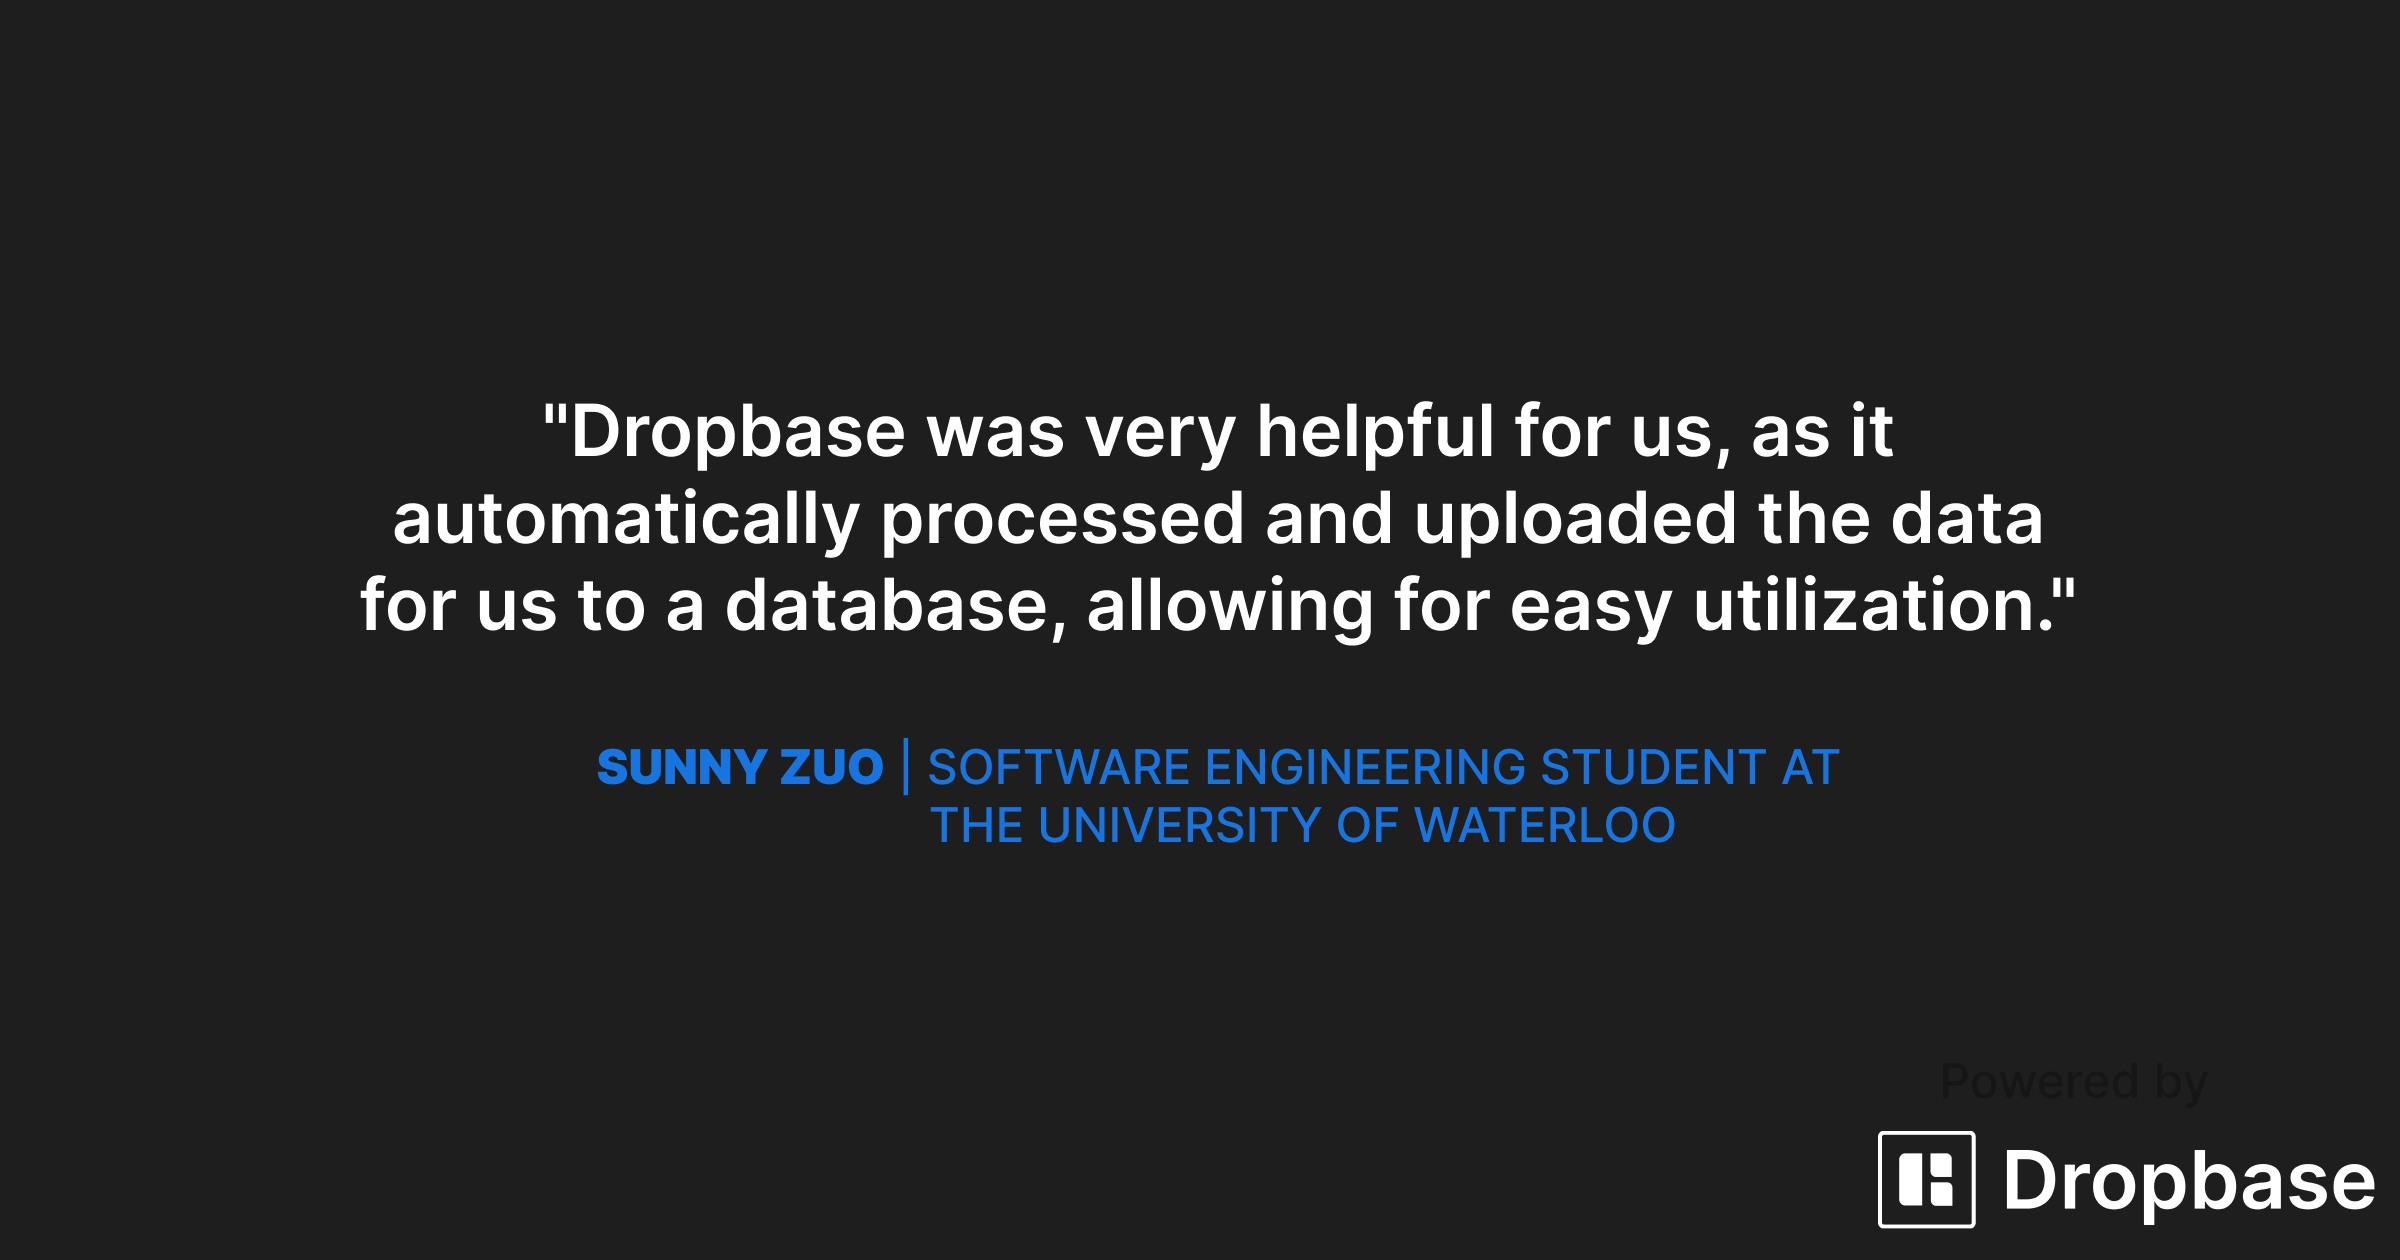 How Dropbase was helpful to Sunny Zuo in automatically processing and uploading data to a database